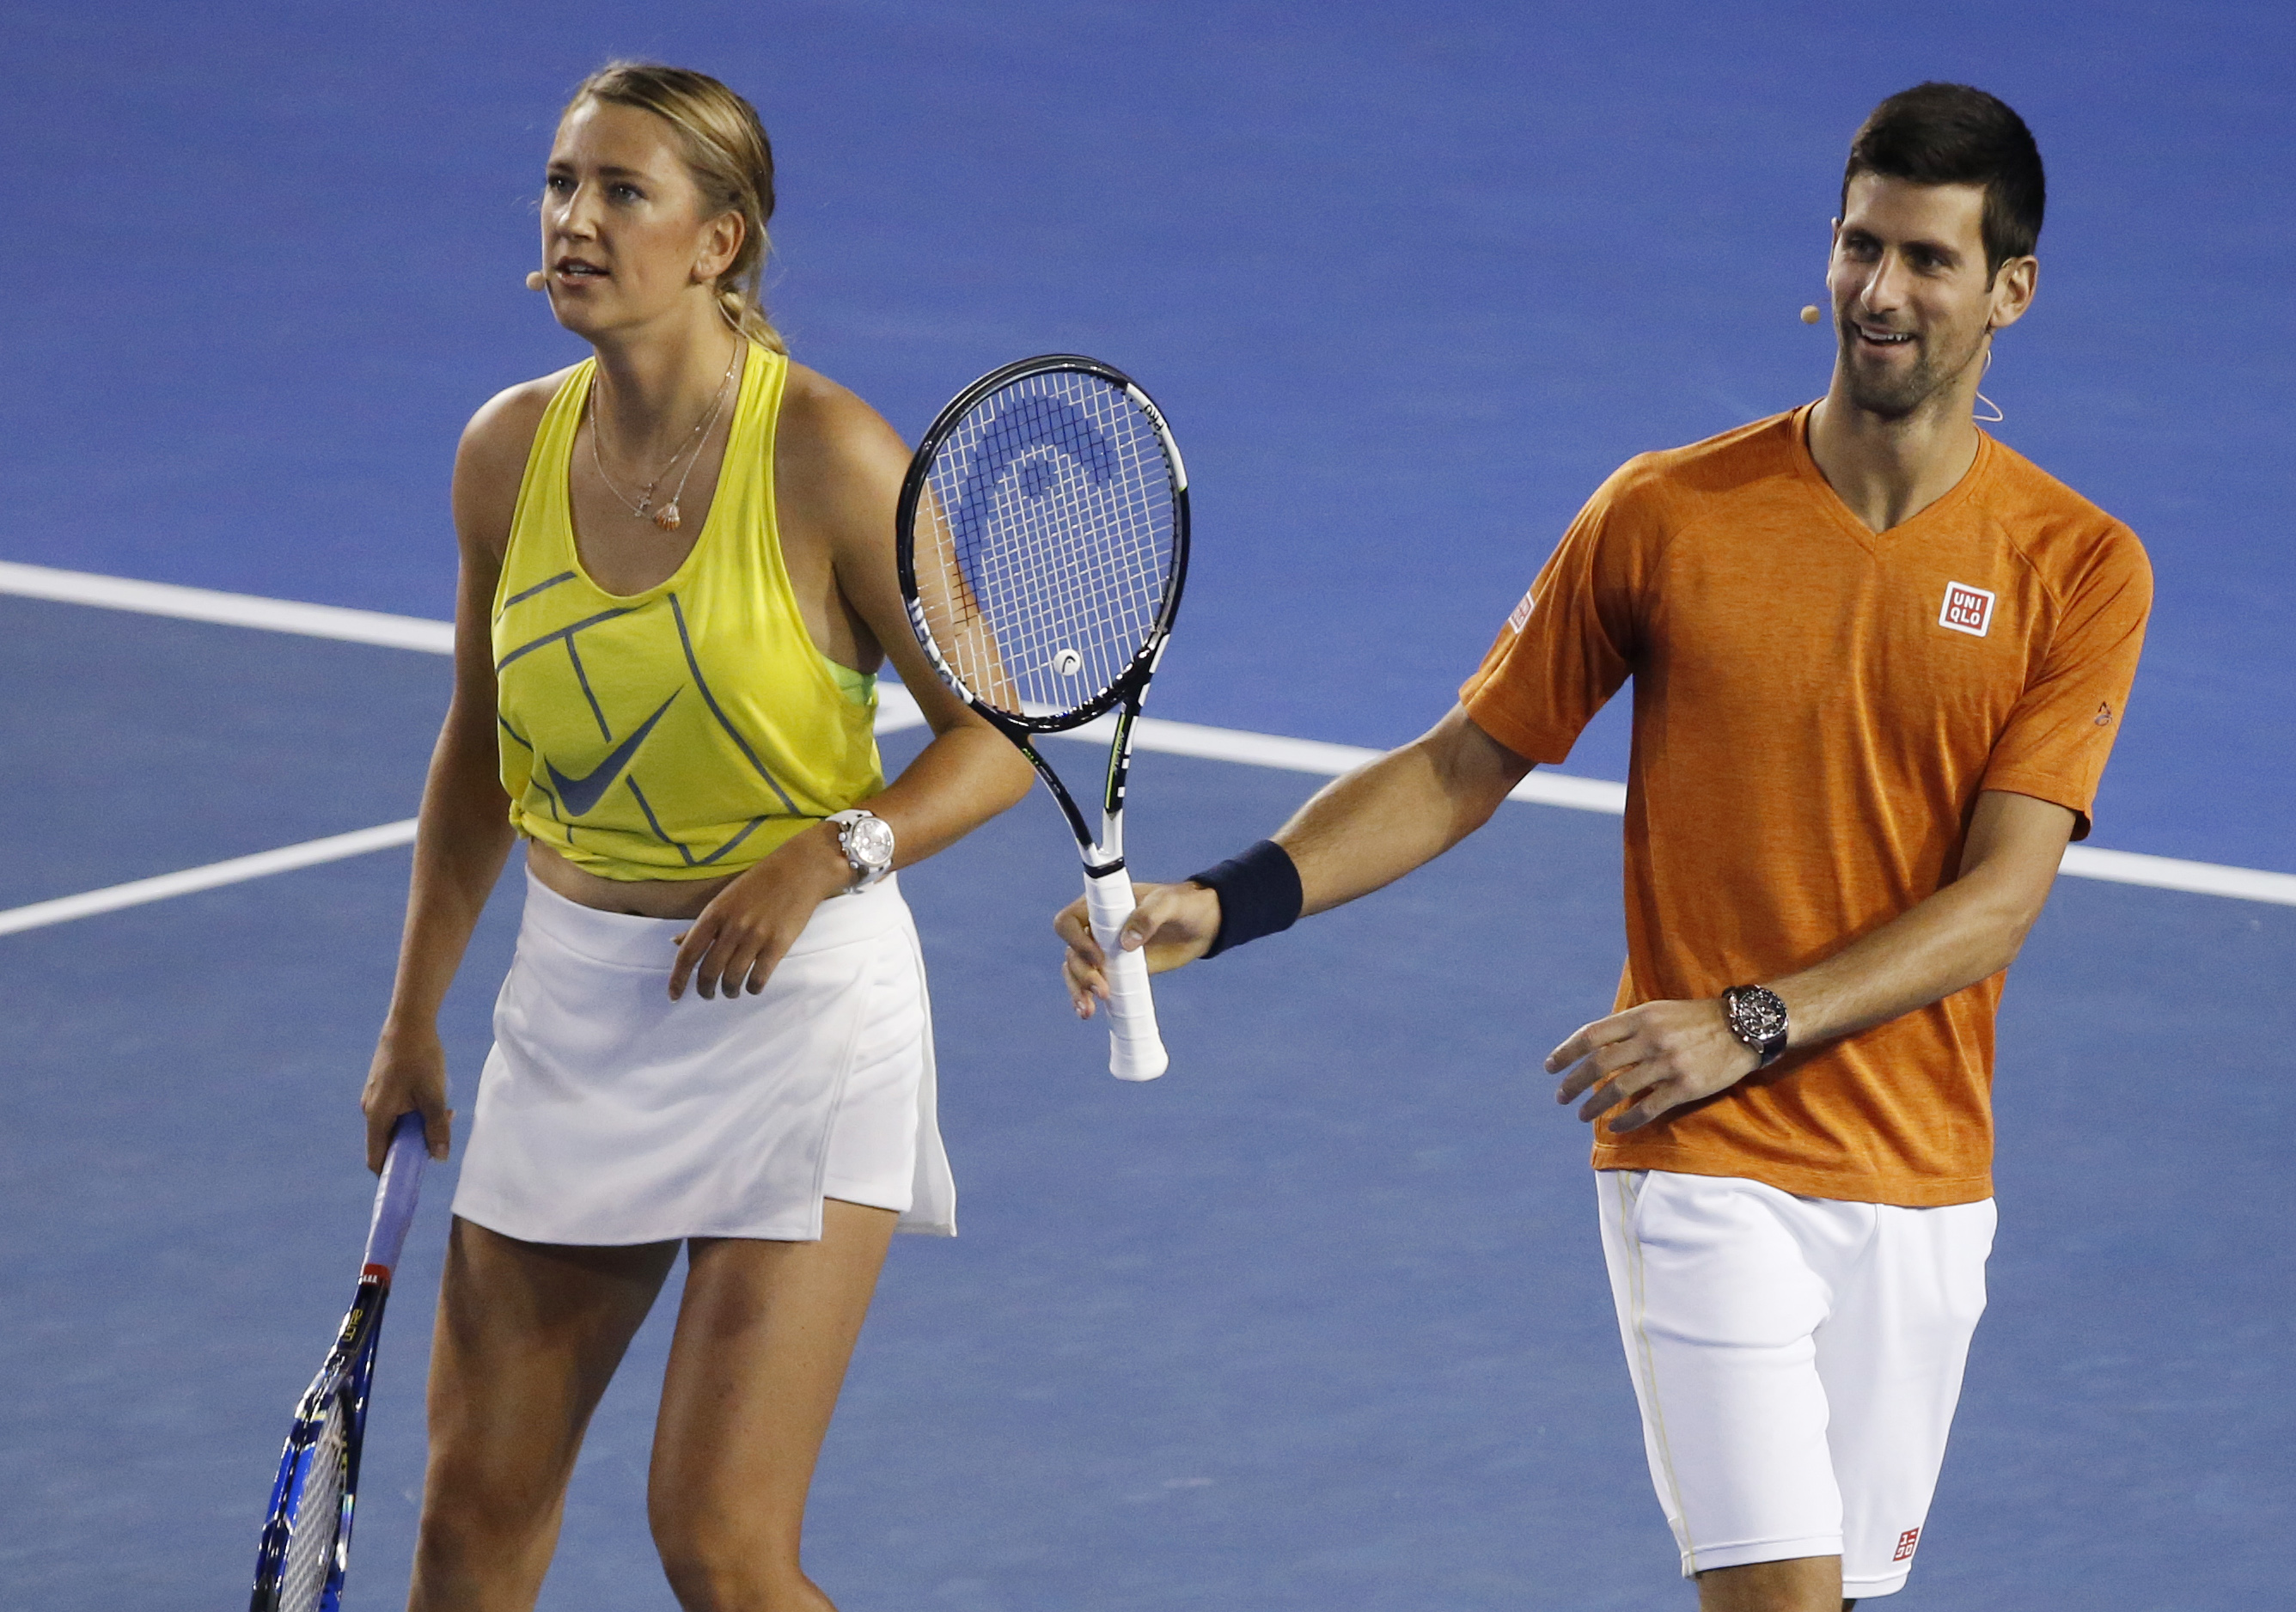 Victoria Azarenka of Belarus and Serbia's Novak Djokovic participate in the Kids Tennis Day, an exhibition event on Rod Laver Arena ahead of the Australian Open tennis championships in Melbourne, Australia, Saturday, Jan. 16, 2016. (AP Photo/Vincent Thian